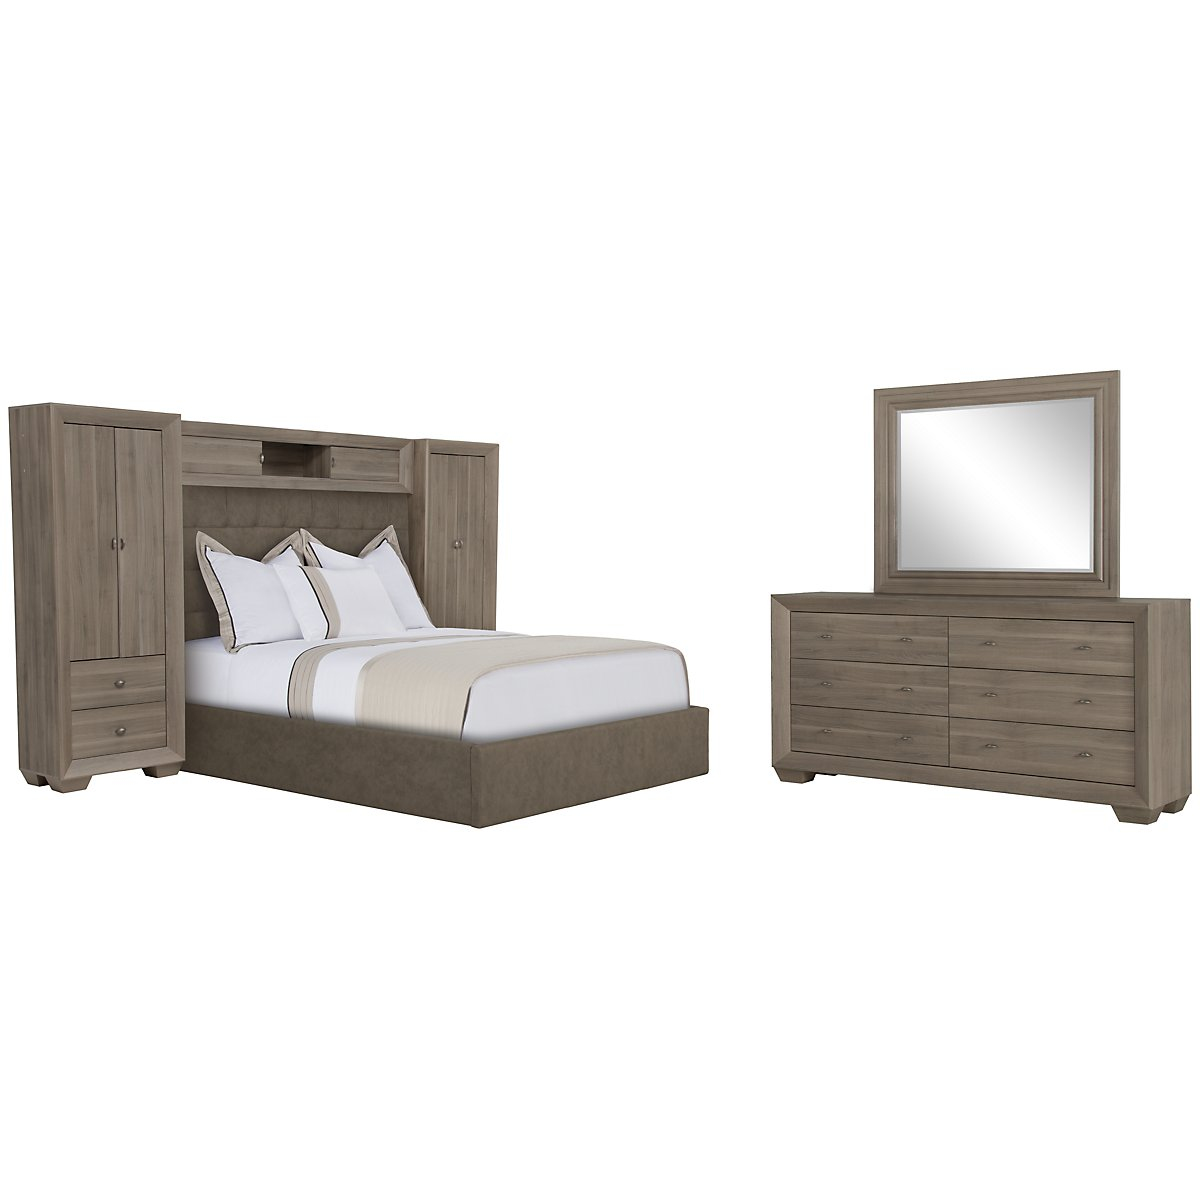 Adele2 Light Tone Upholstered Wall Bedroom